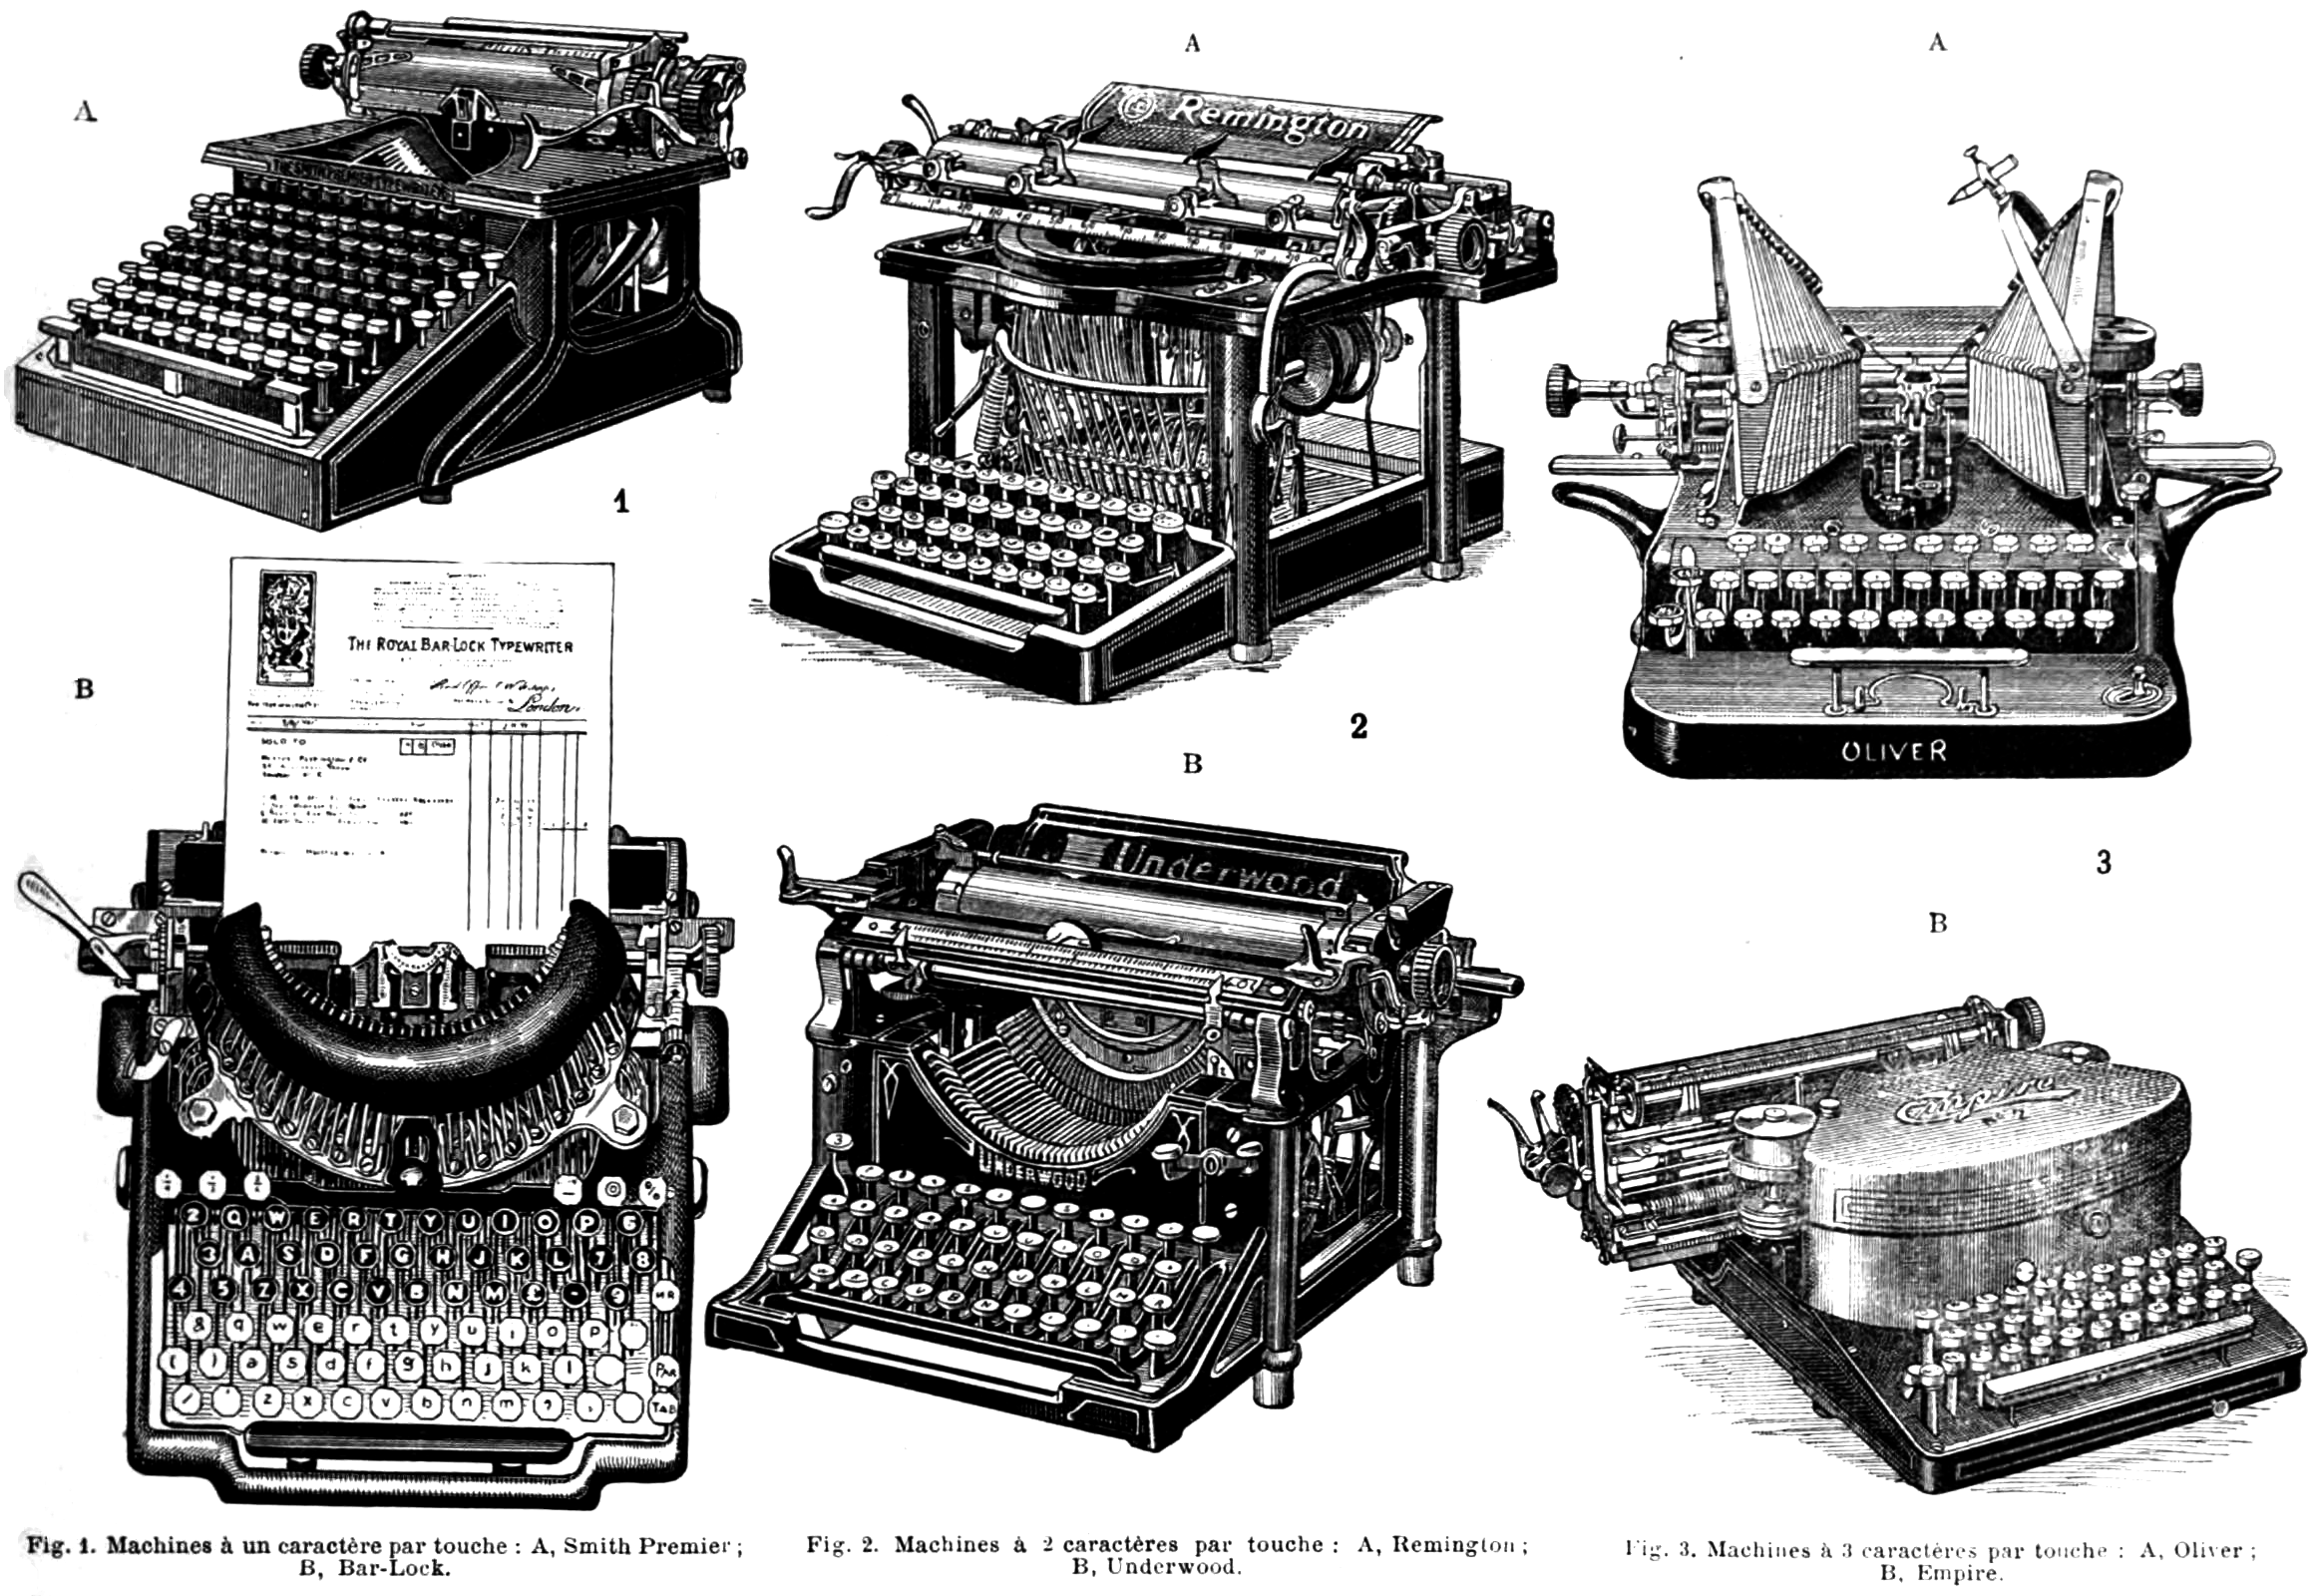 Comparison_of_Full-Keyboard,_Single-Shift,_and_Double-Shift_Typerwriters_in_1911.png